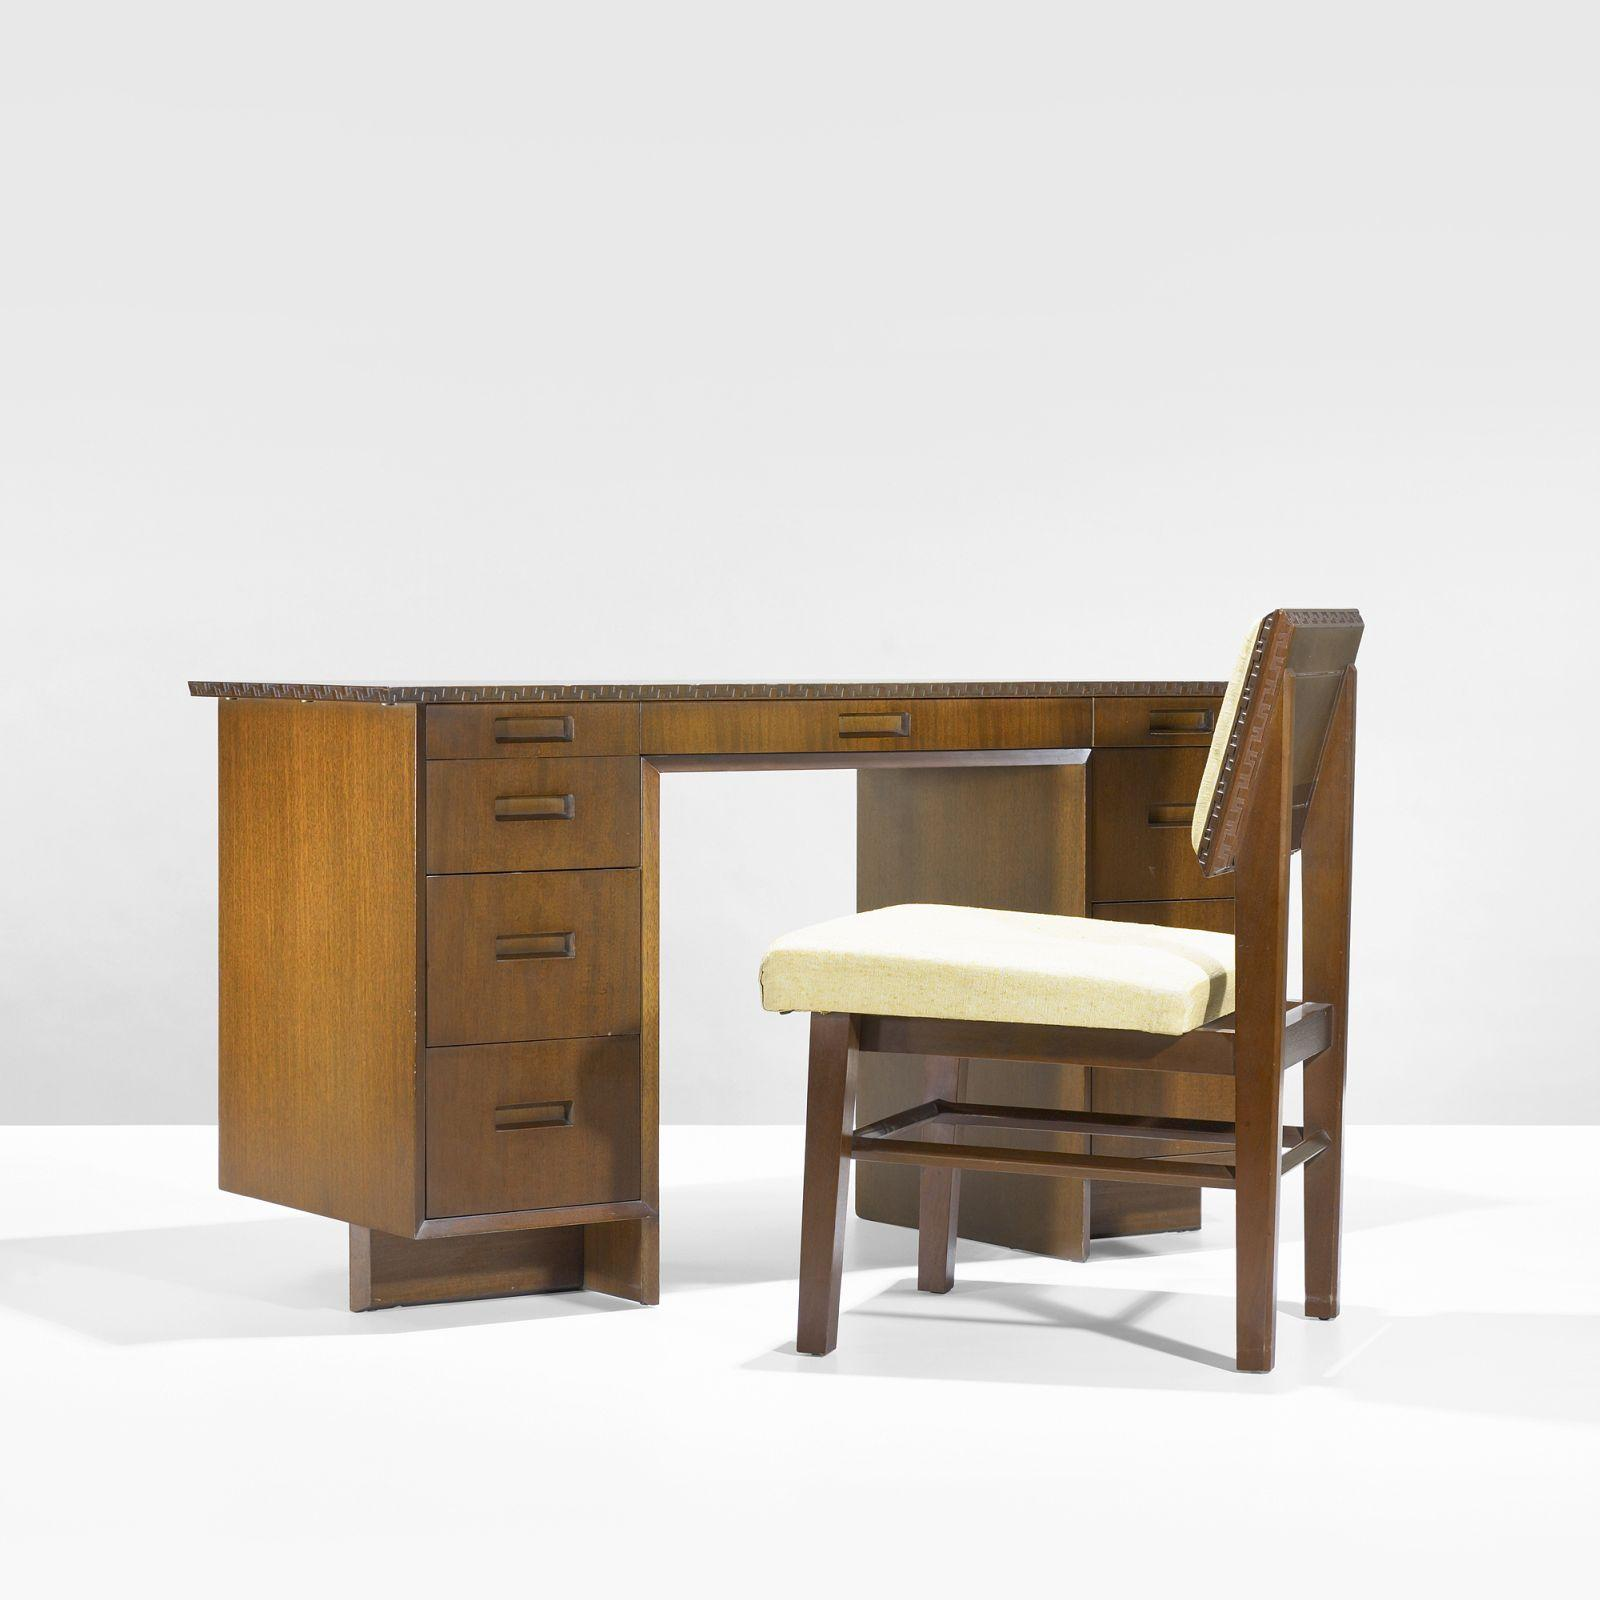 Frank Lloyd Wright desk, model 2000 and chair